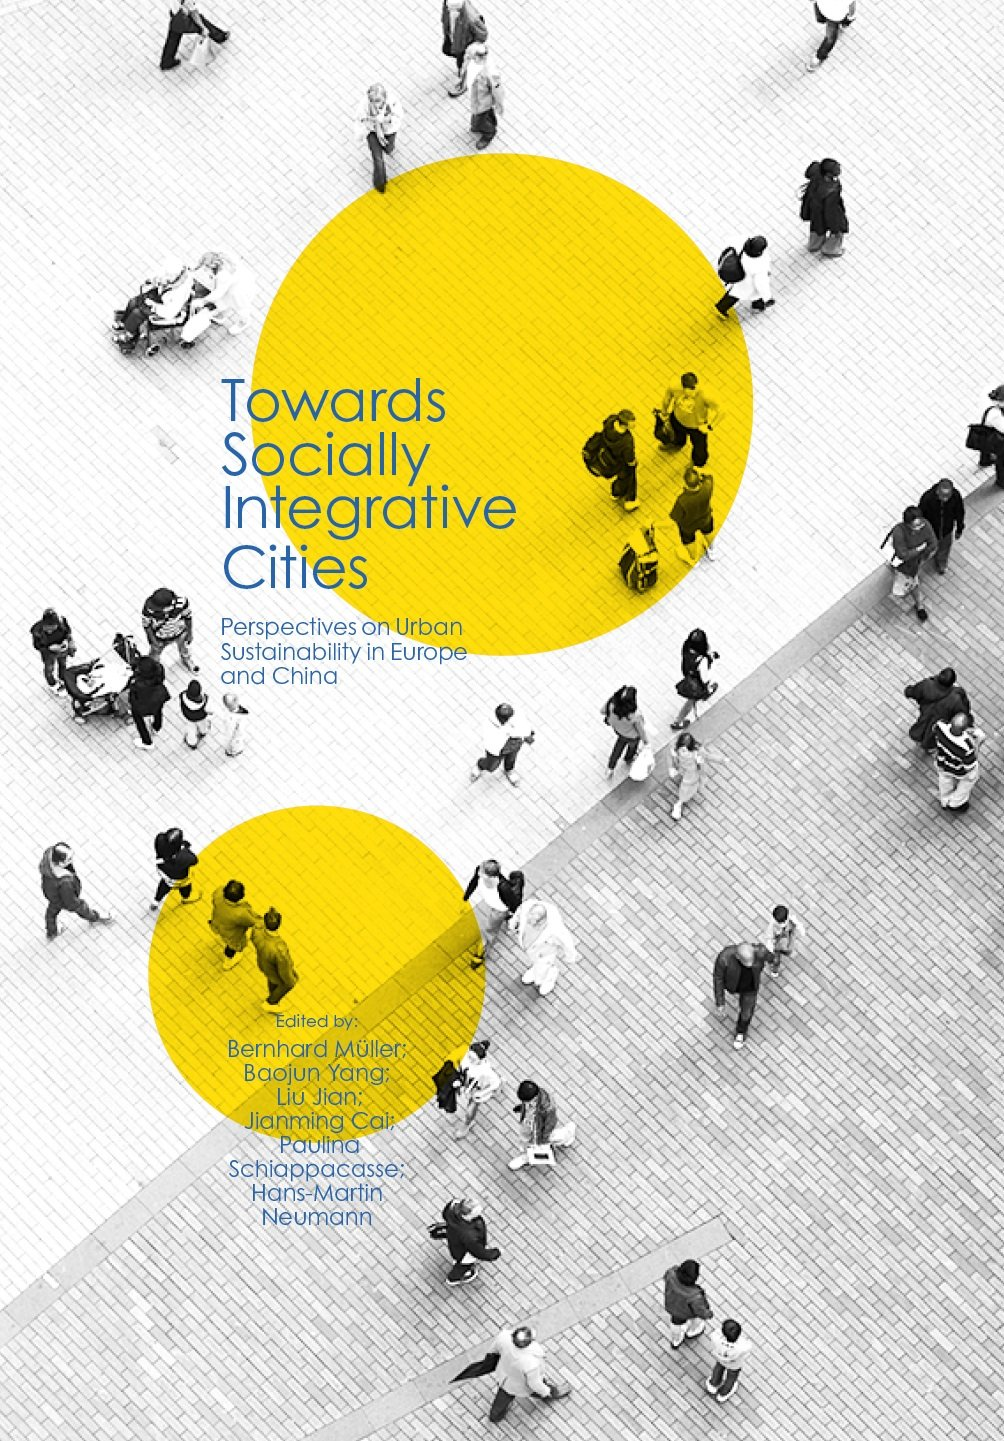 Towards Socially Integrative Cities